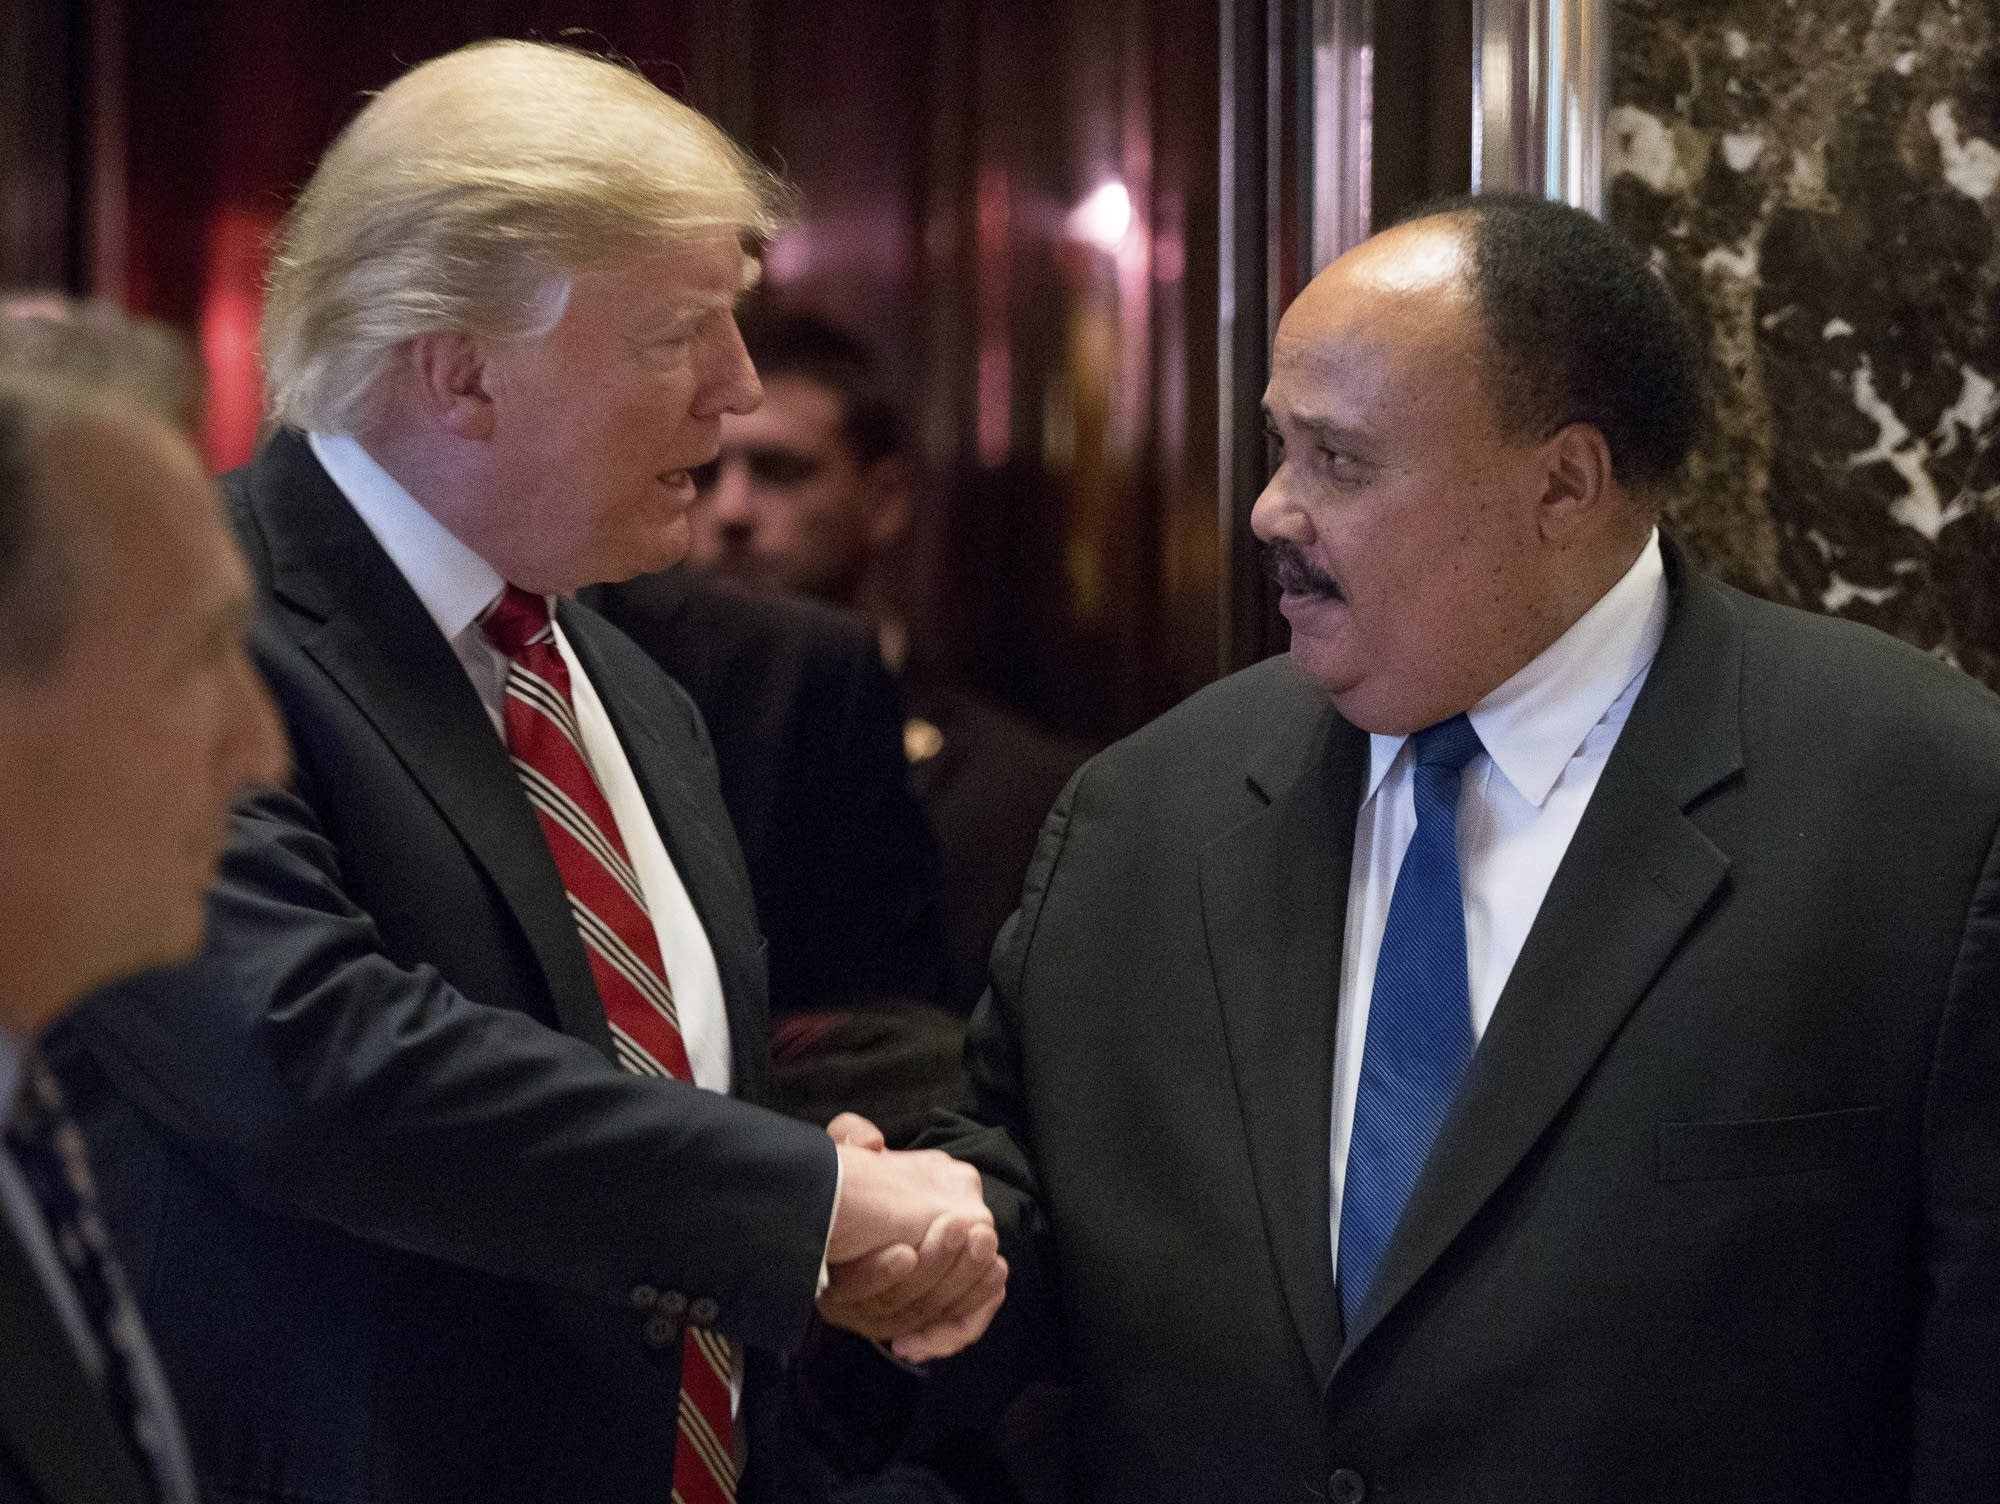 Martin Luther King III meets with Donald Trump